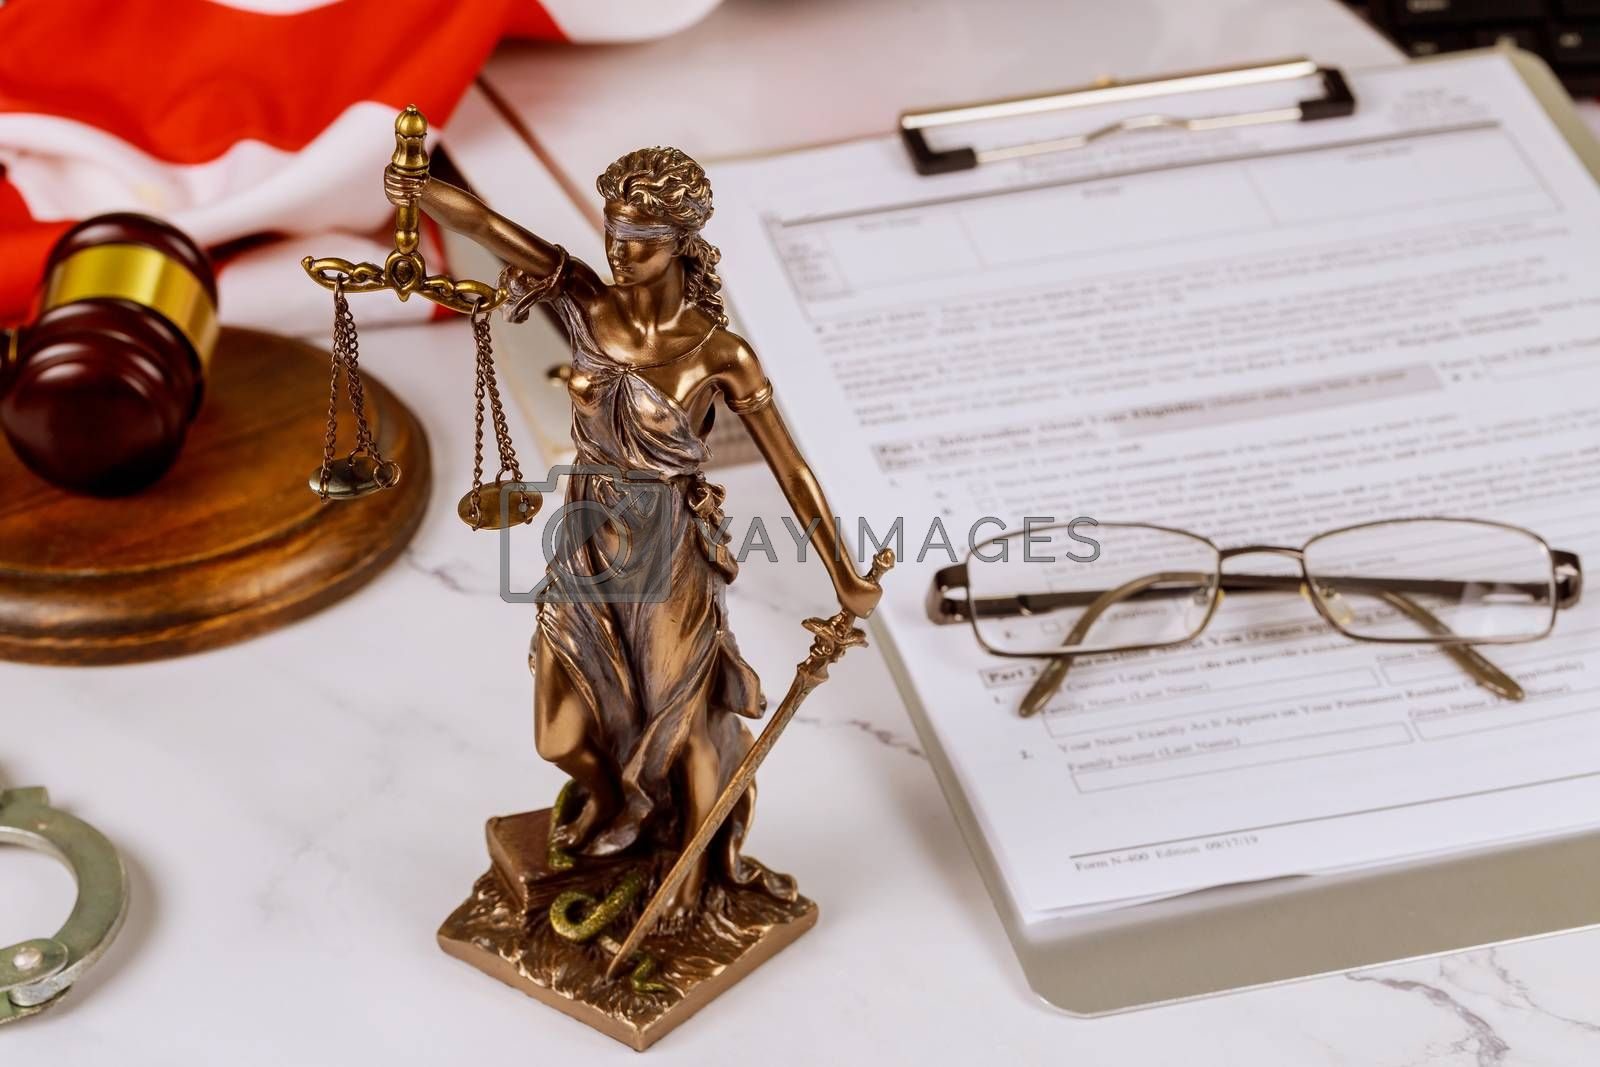 Justice counselor in suit lawyer working on a documents at law firm in office justice service